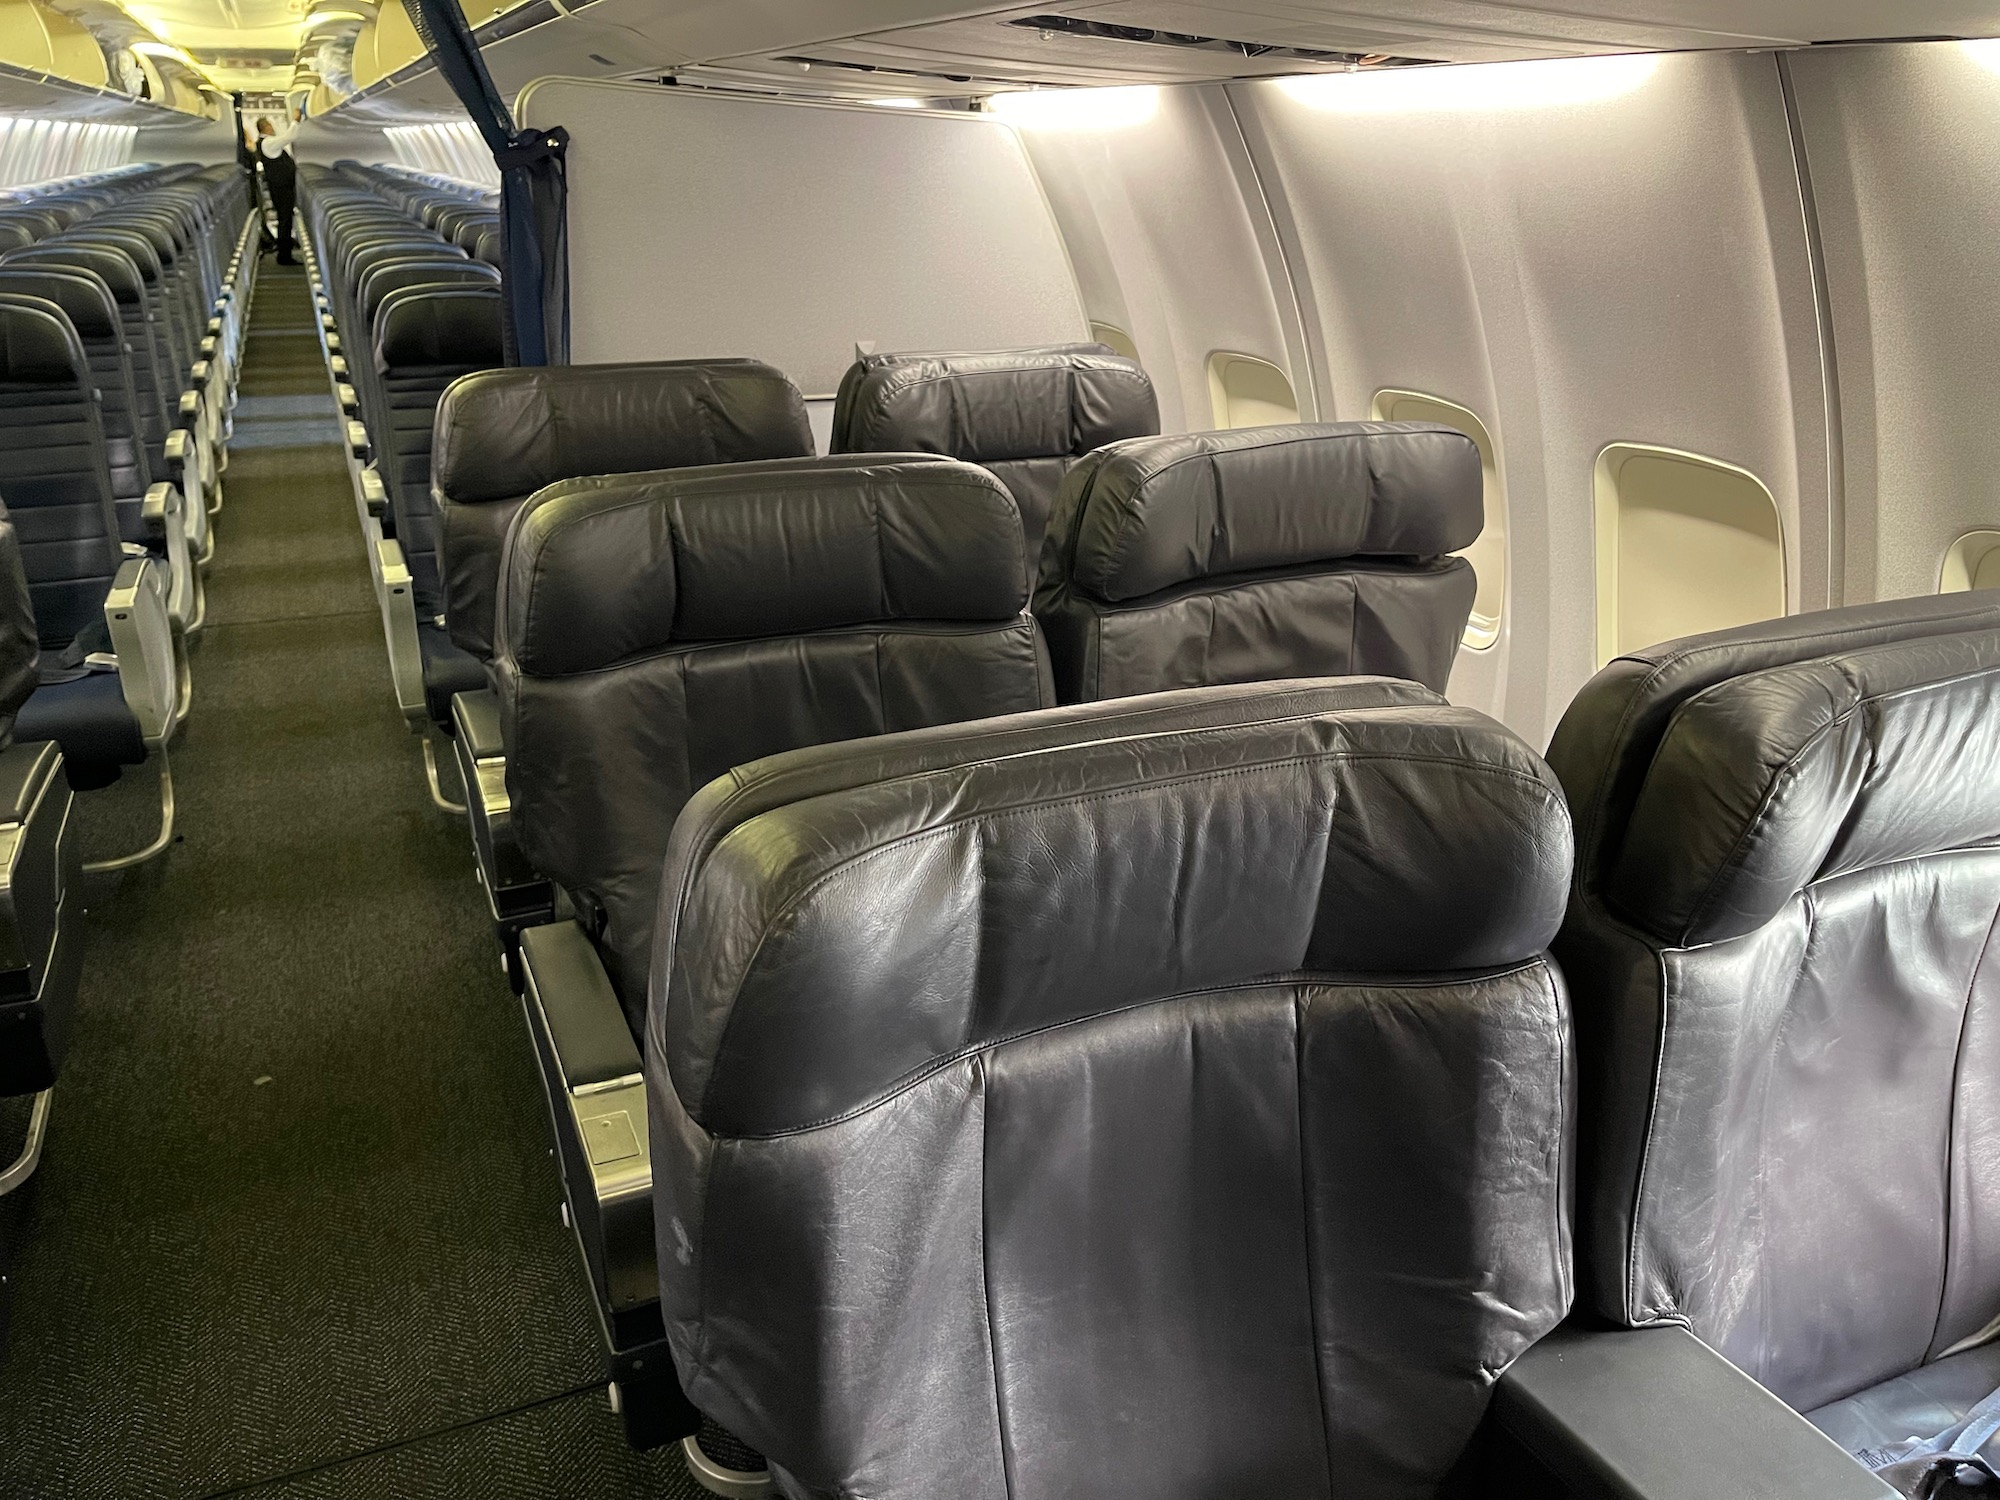 Review: United Airlines 737-800 Business Class To Guatemala City - Live and Let's Fly